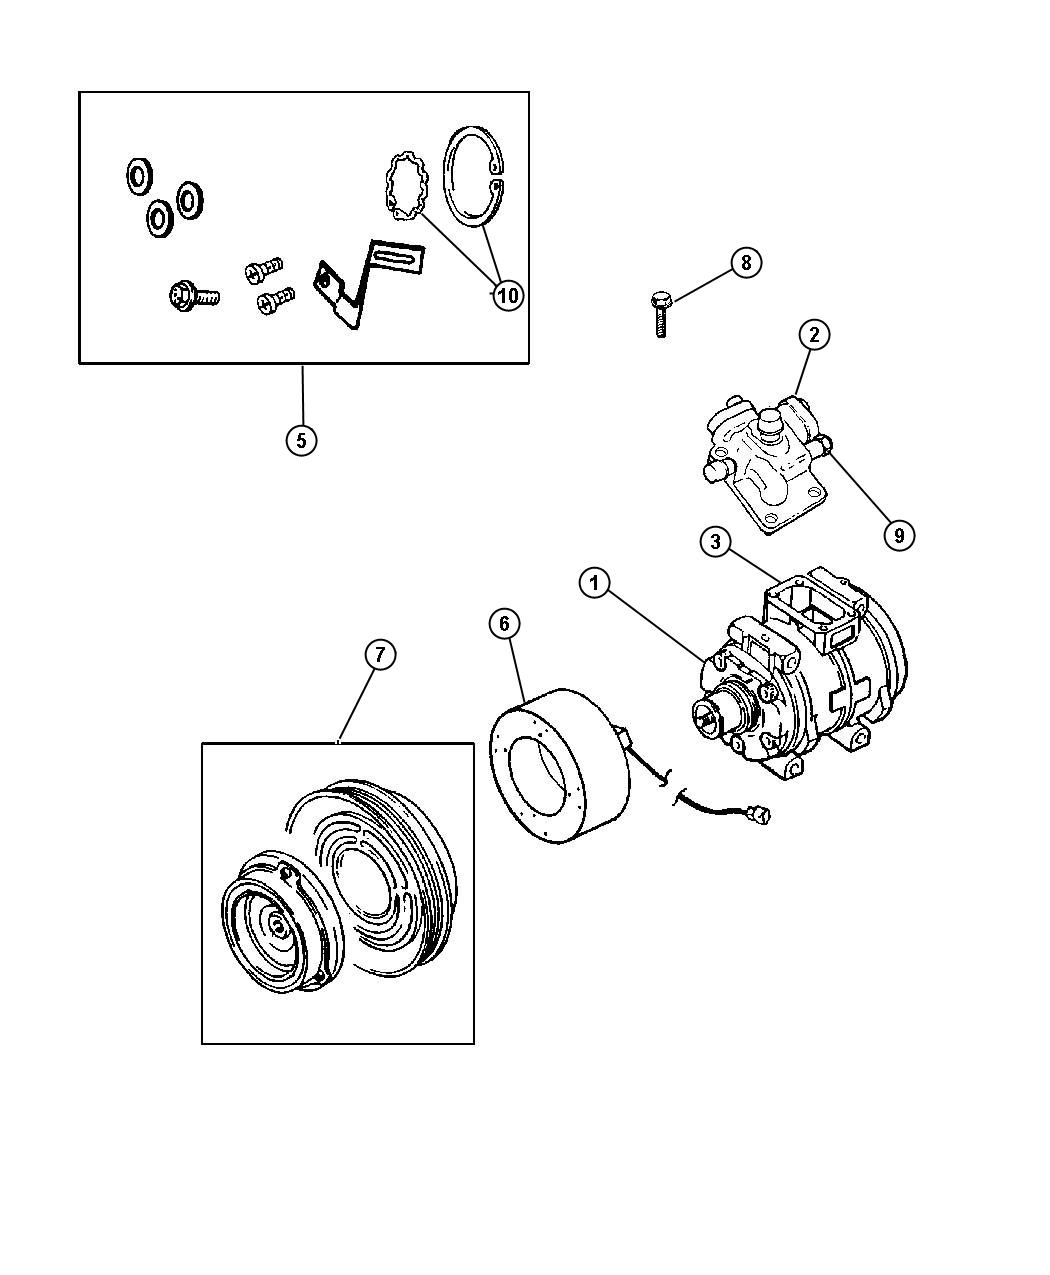 Chrysler Town Amp Country Used For Bolt And Washer